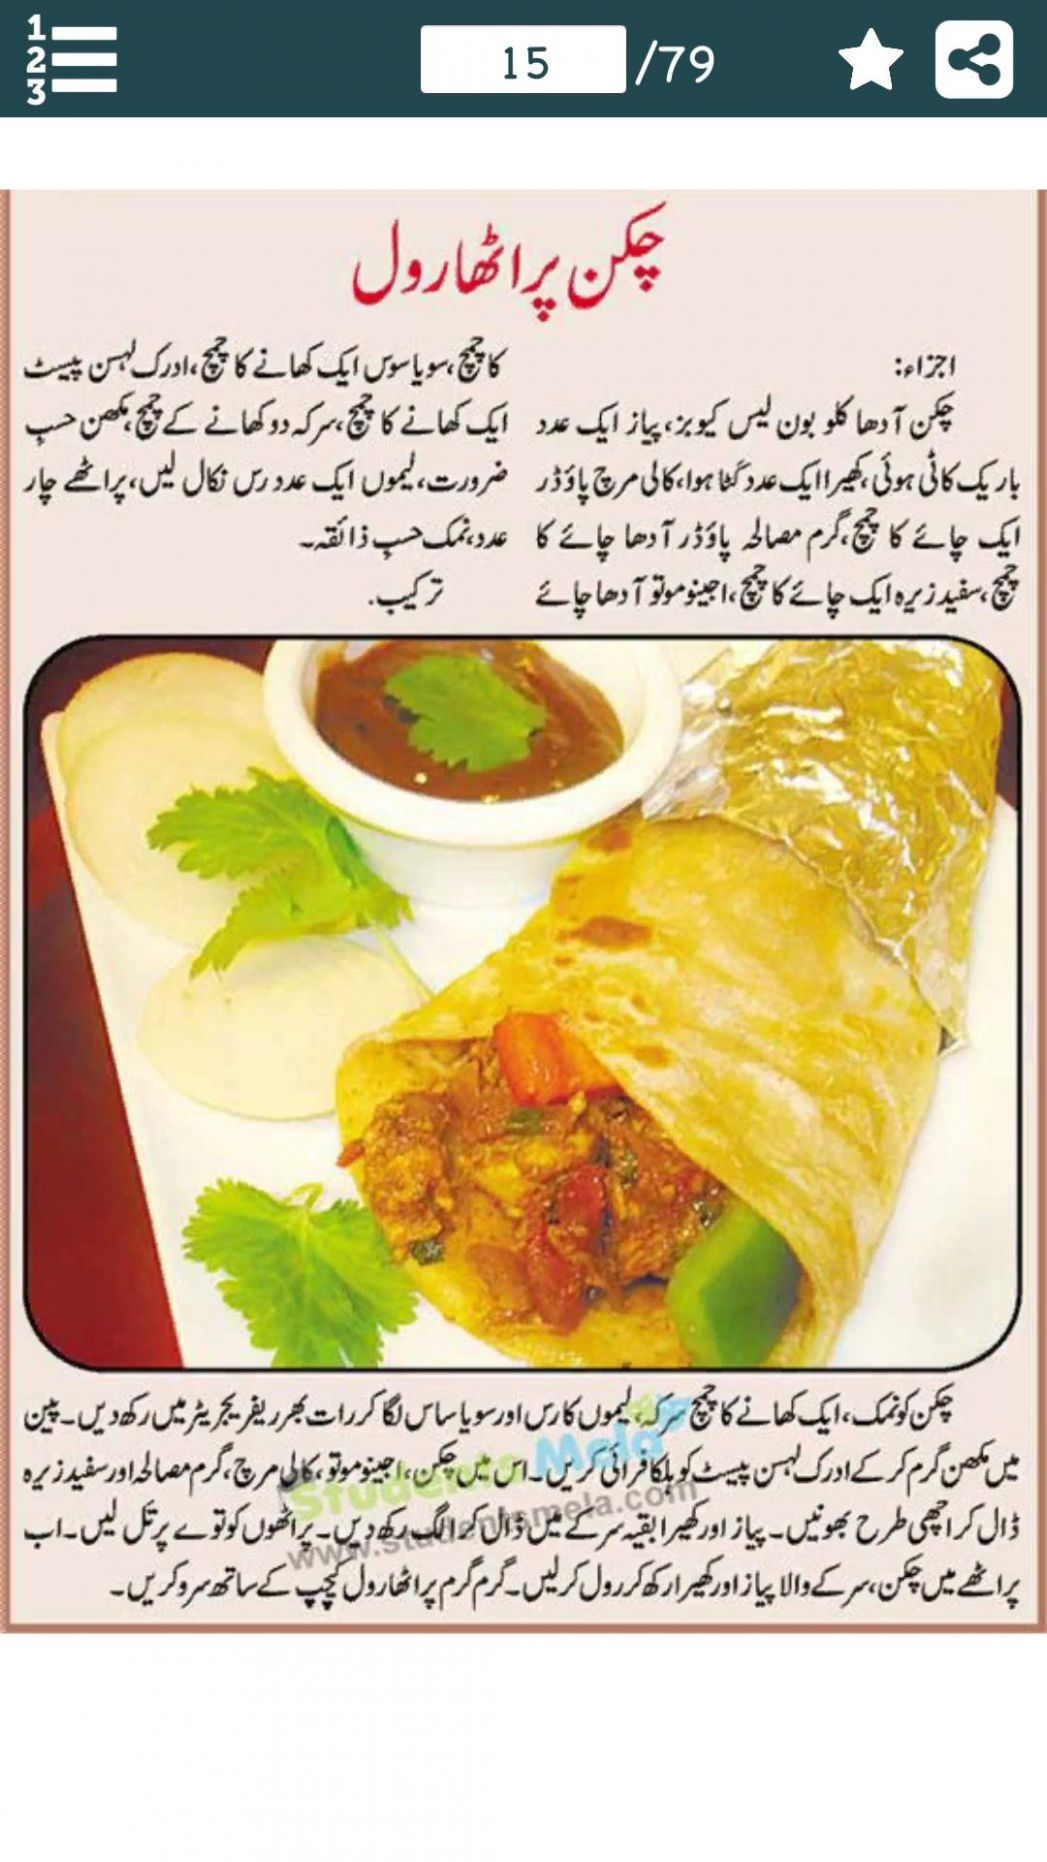 Pakistani Easy Recipes in URDU for Android - APK Download - Easy Recipes In Urdu